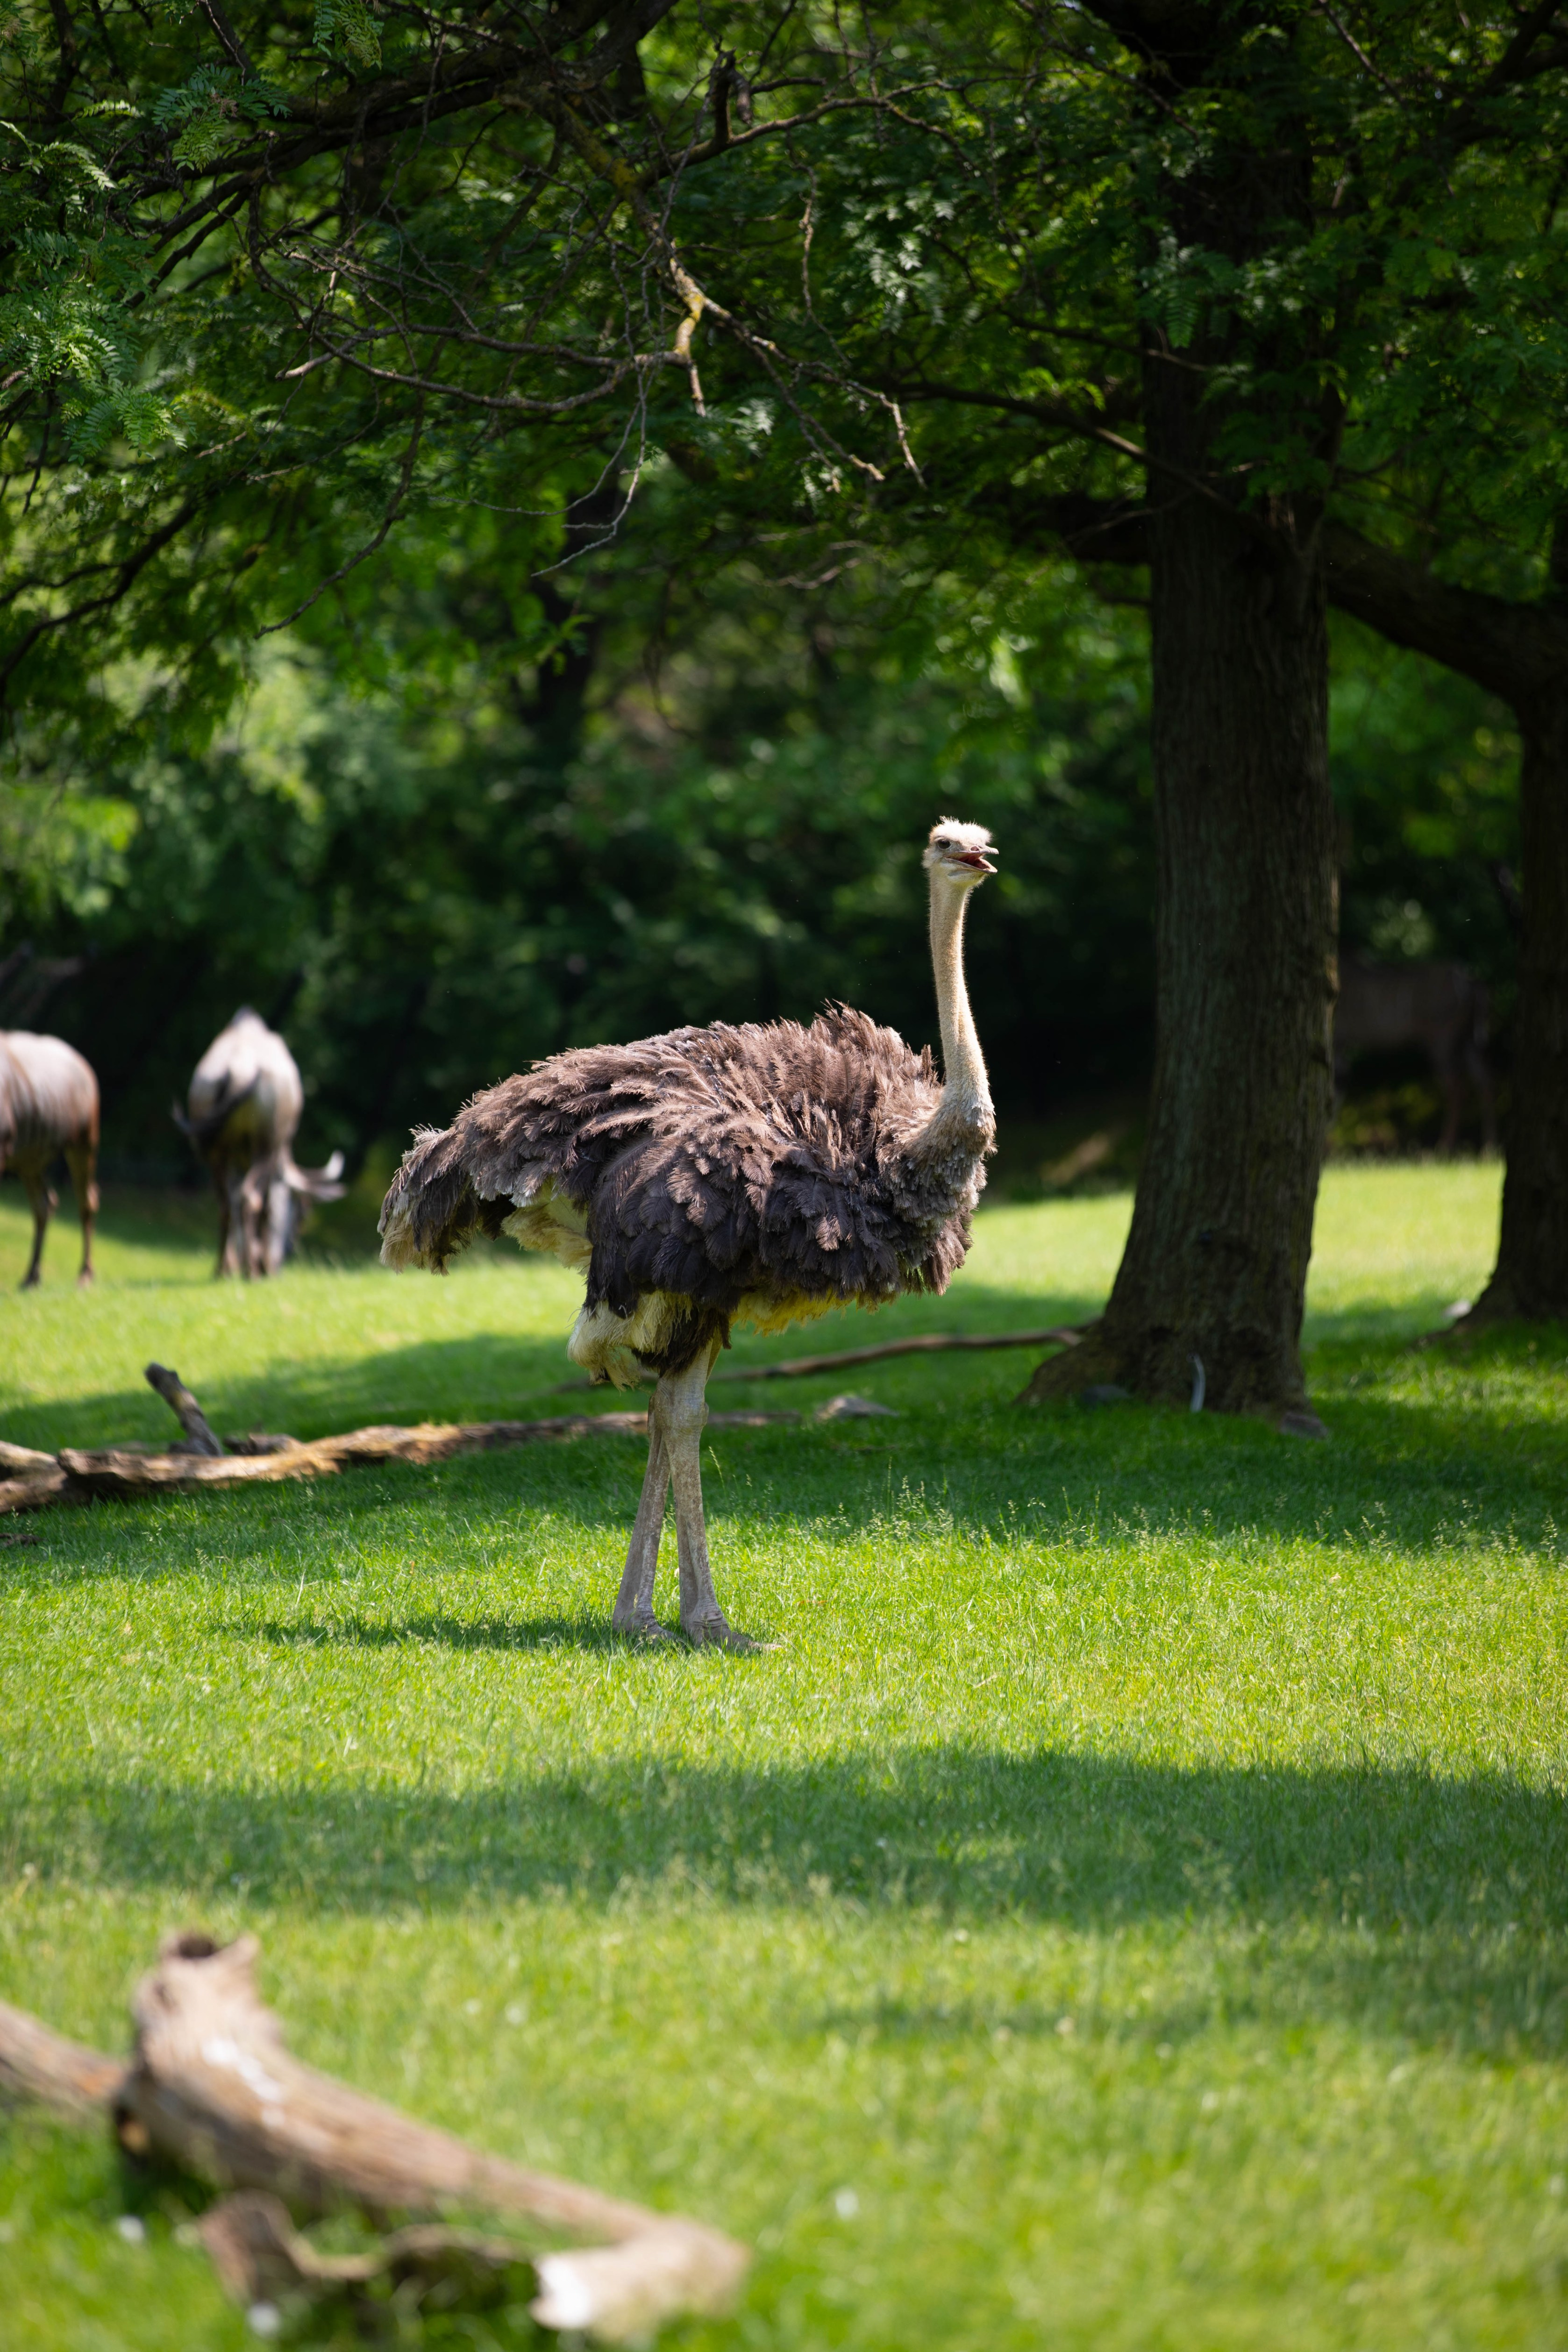 Indianapolis Travel Guide Emu Indianapolis Zoo and Botanical Garden Where to Stay What to Eat What to Do Museums Gardens indy 500 Travel Guide